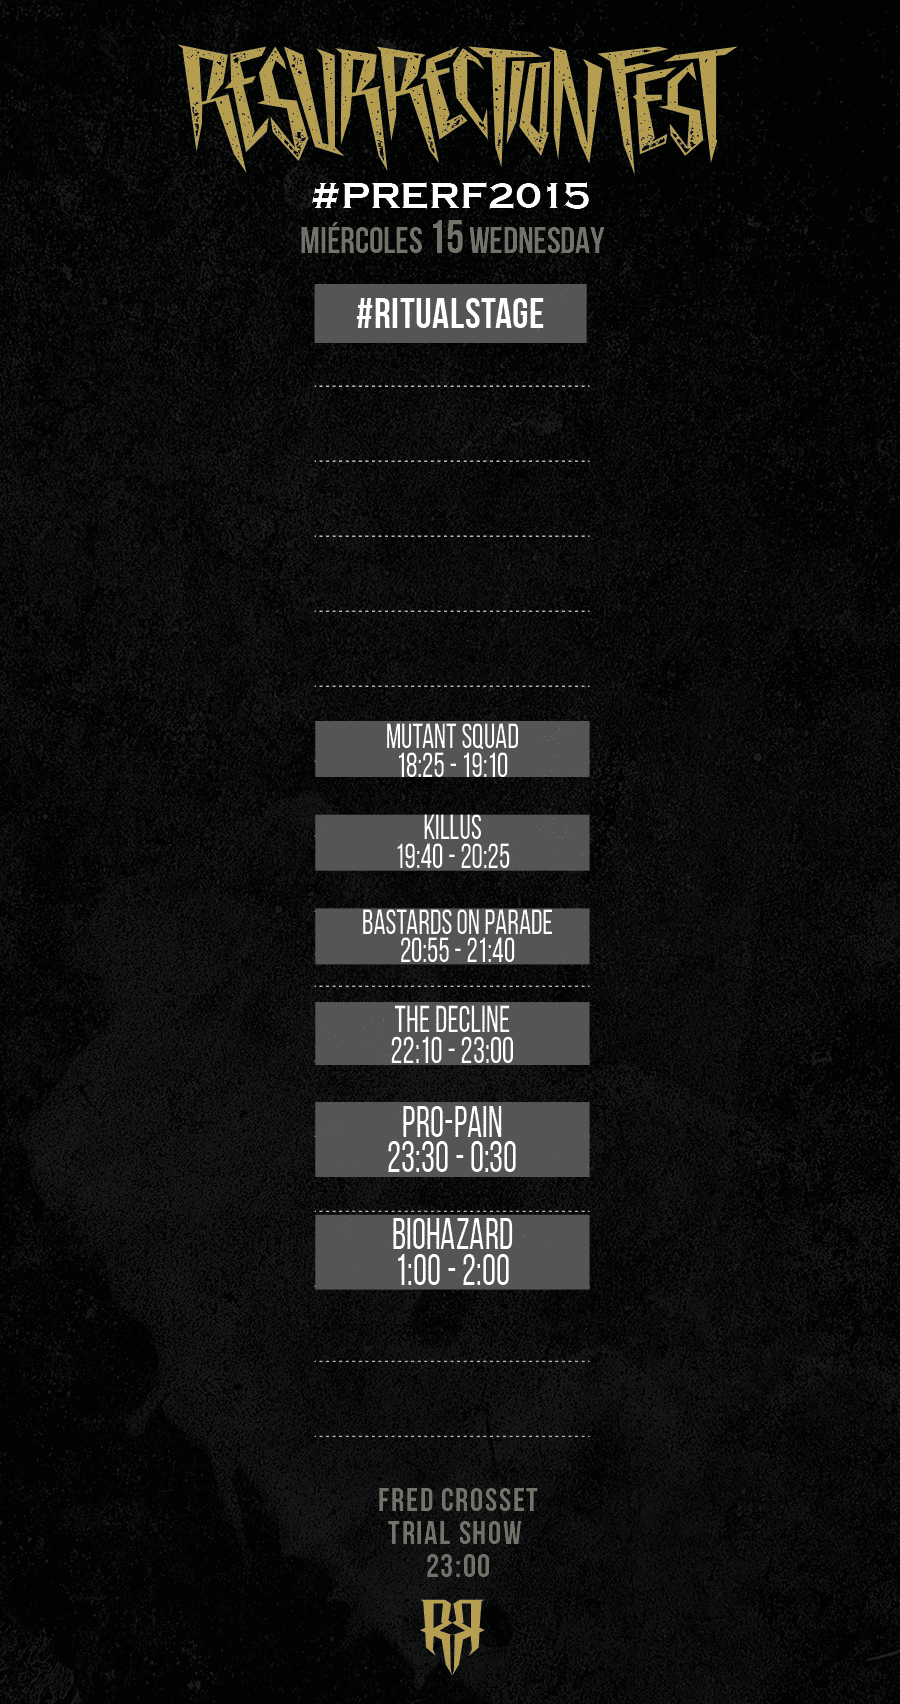 Resurrection Fest 2015 - Running Order - 15